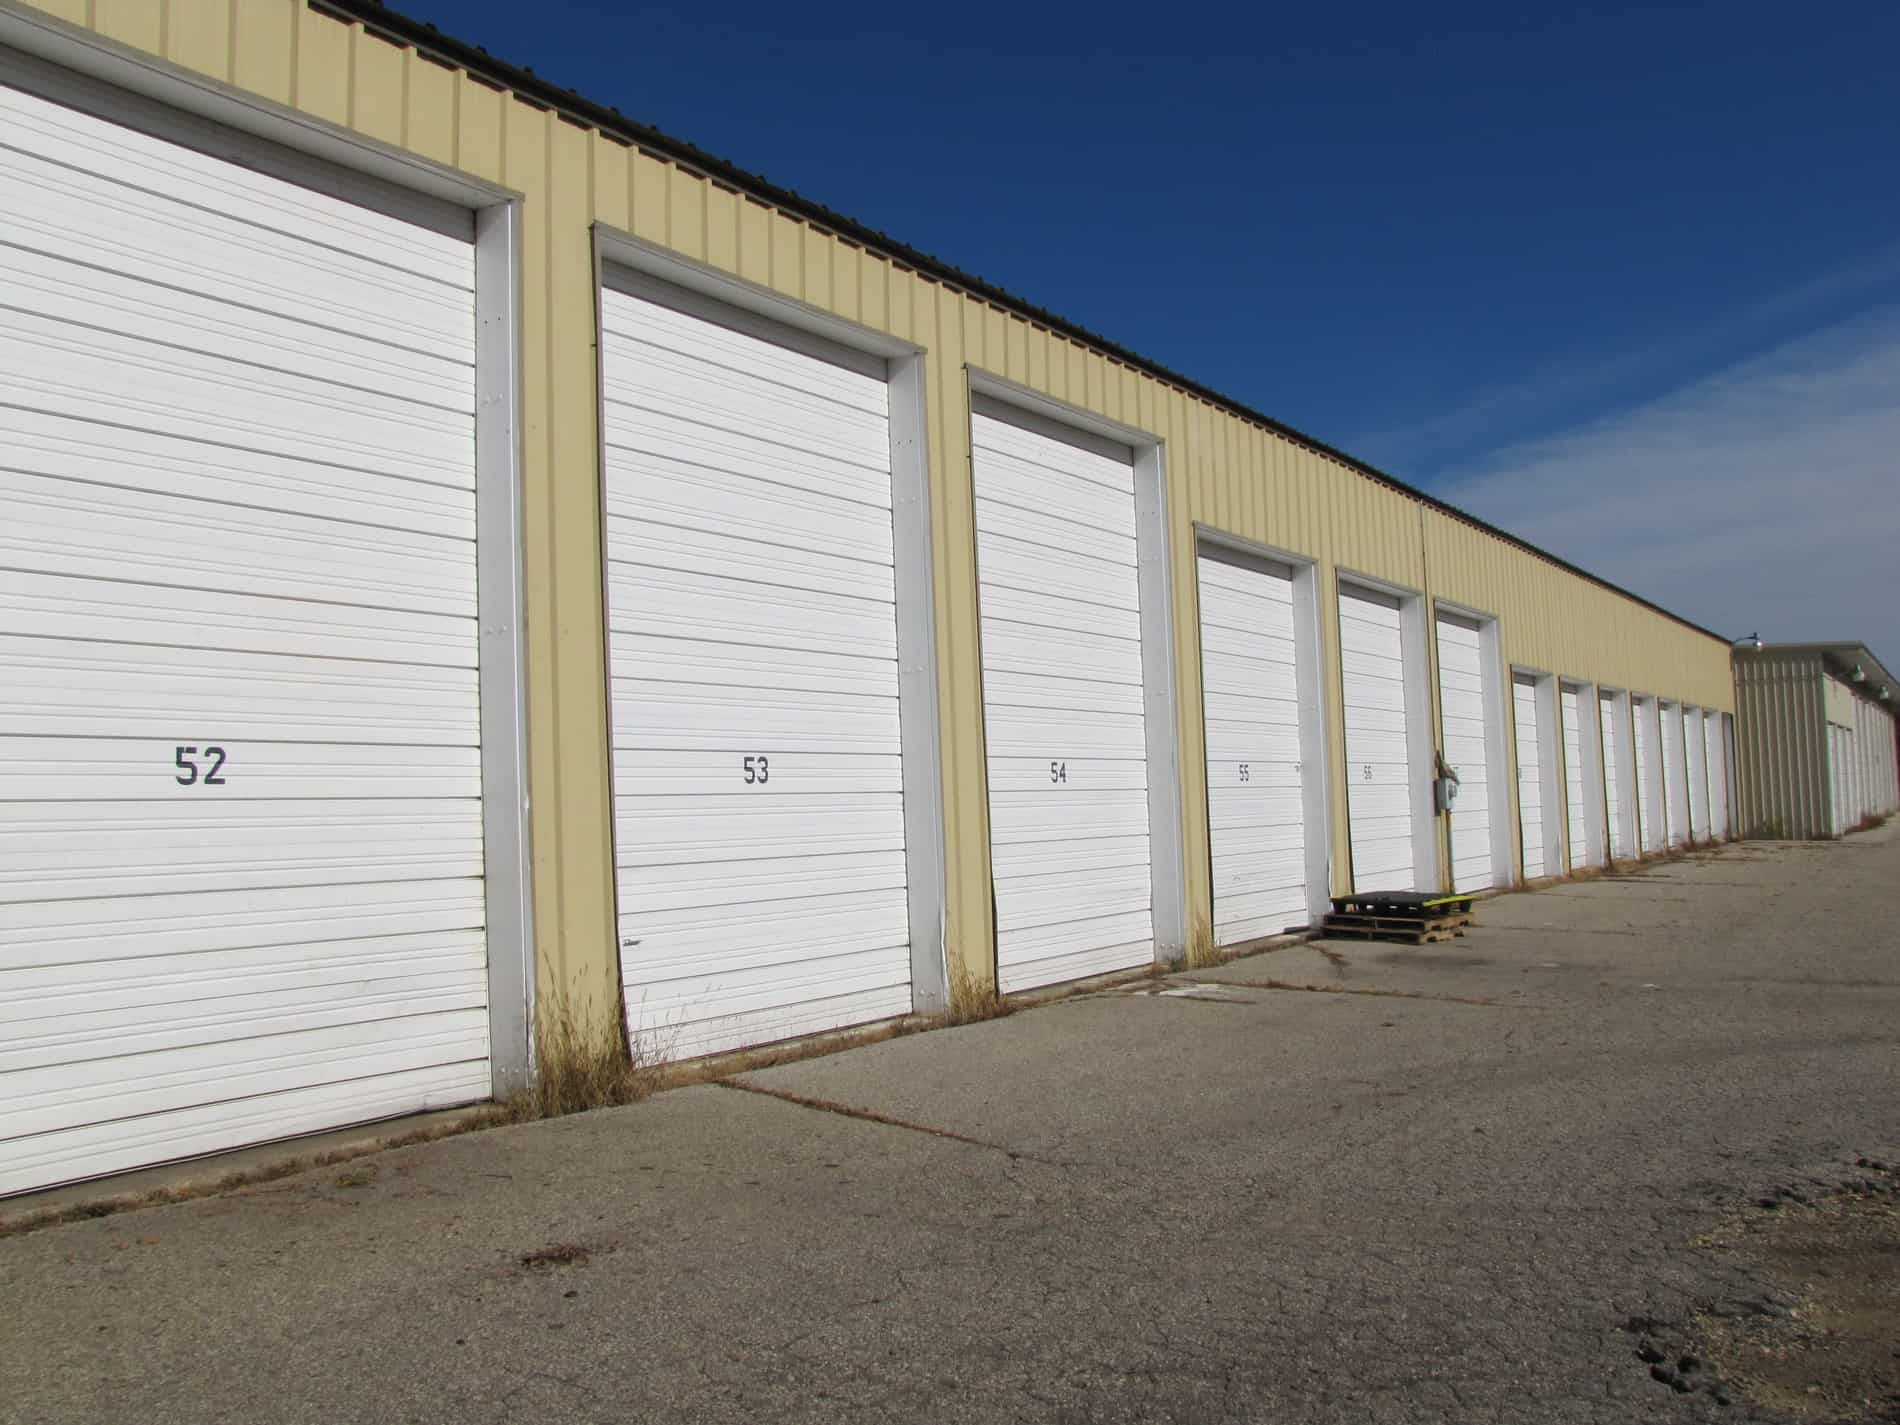 Incroyable Oversized Units With Extra Large Doors Are Available At This Site, Which  Are Ideal For RV/Boat Storage.